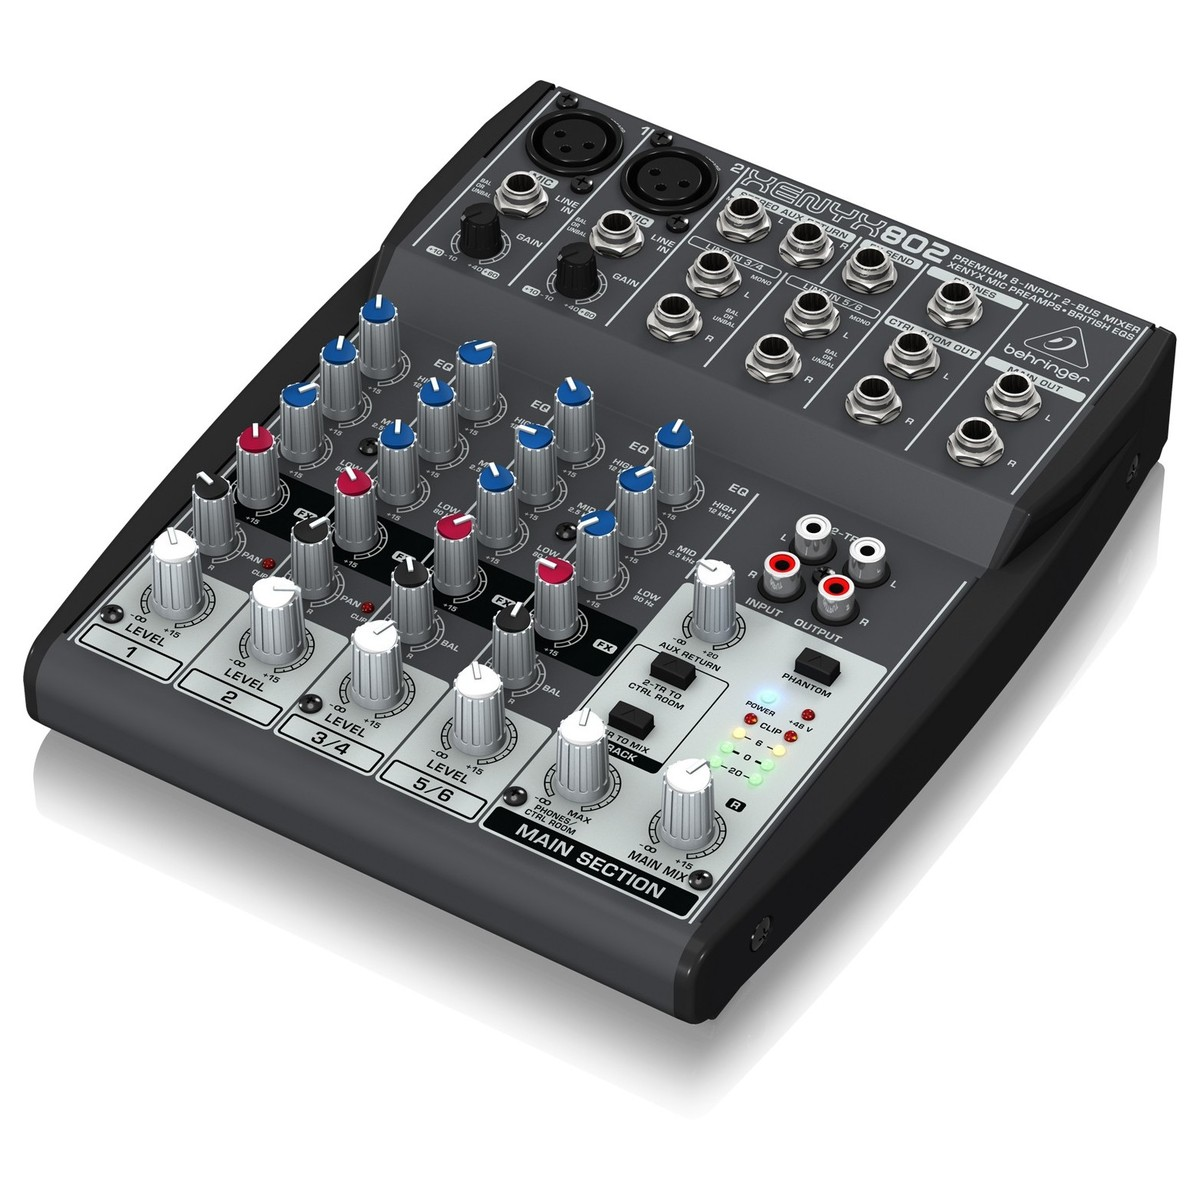 behringer xenyx 802 mixer at gear4music. Black Bedroom Furniture Sets. Home Design Ideas